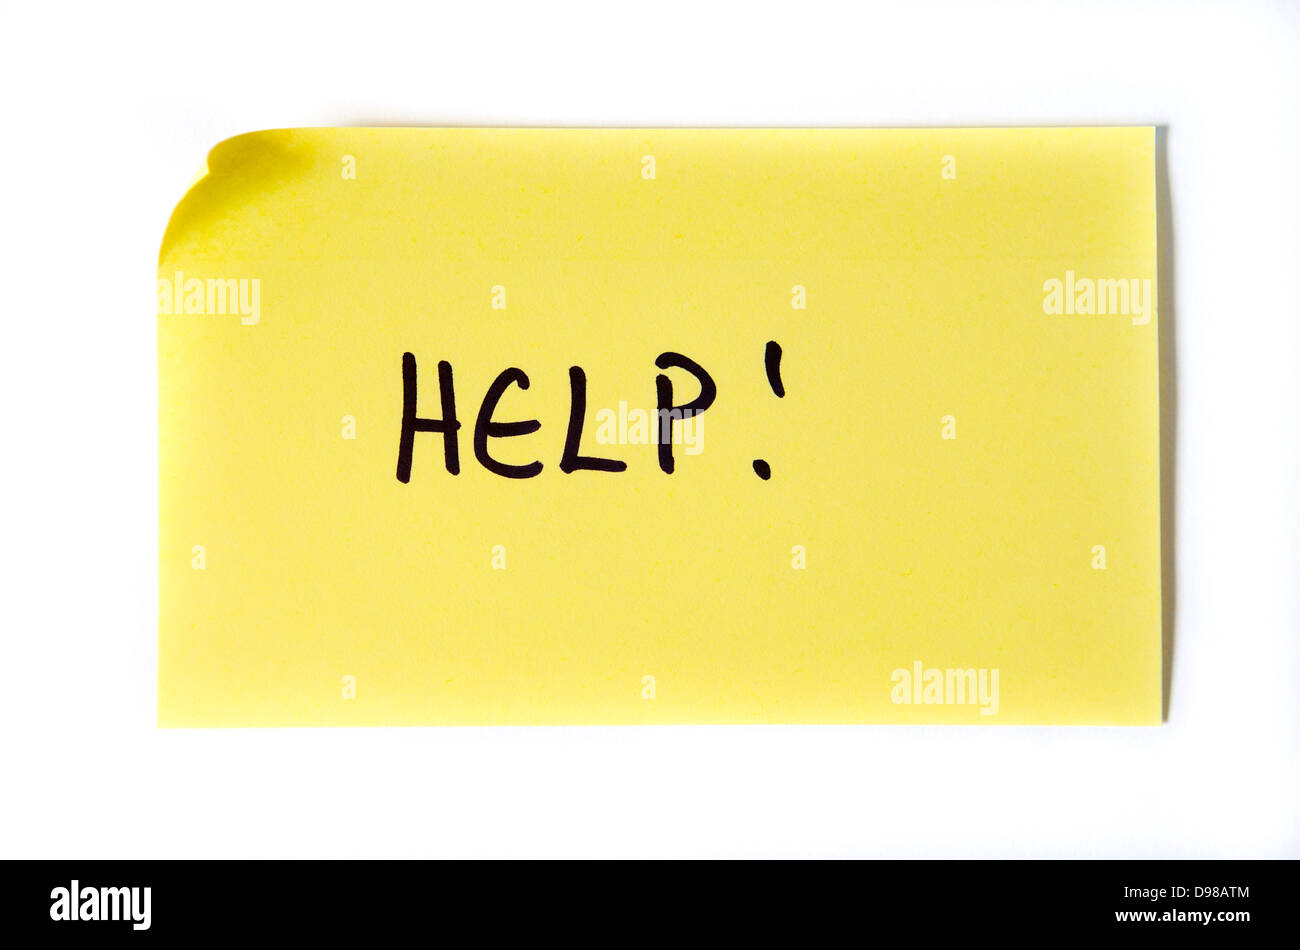 Help! Written in capital letters on a yellow post-it note - Stock Image